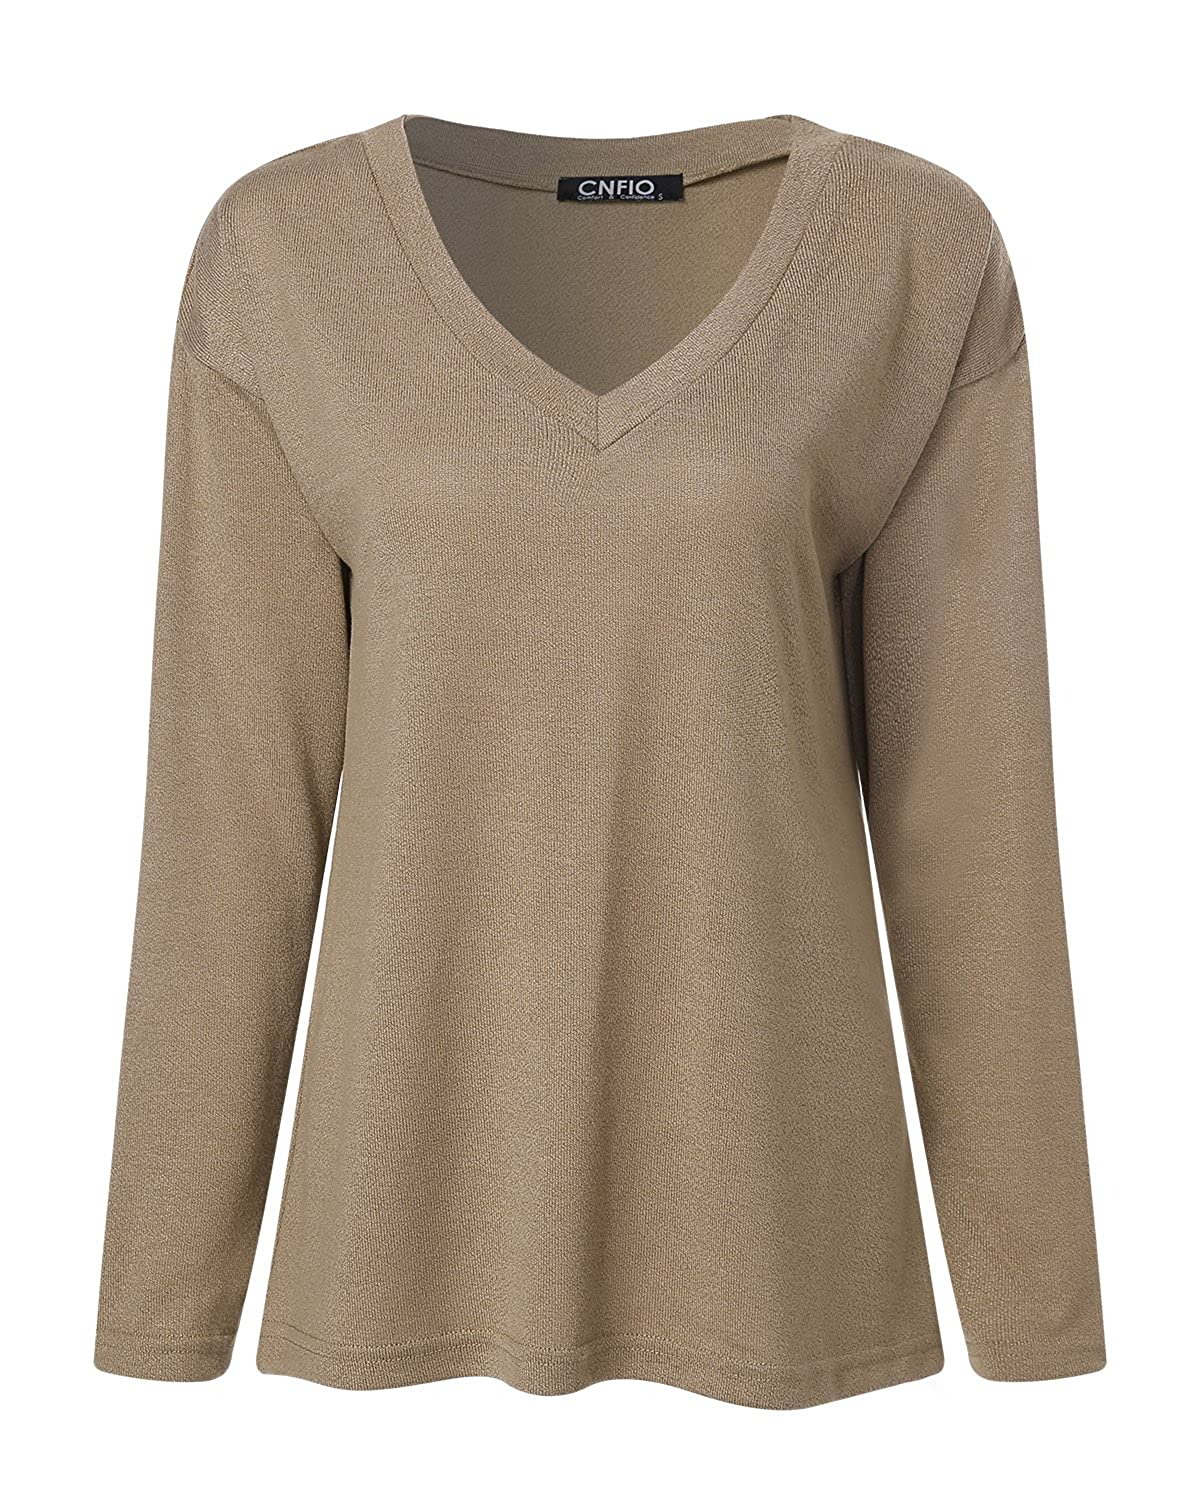 CNFIO Womens V Neck Sweater Shirt Long Sleeves Tops Thin Knit Pullover